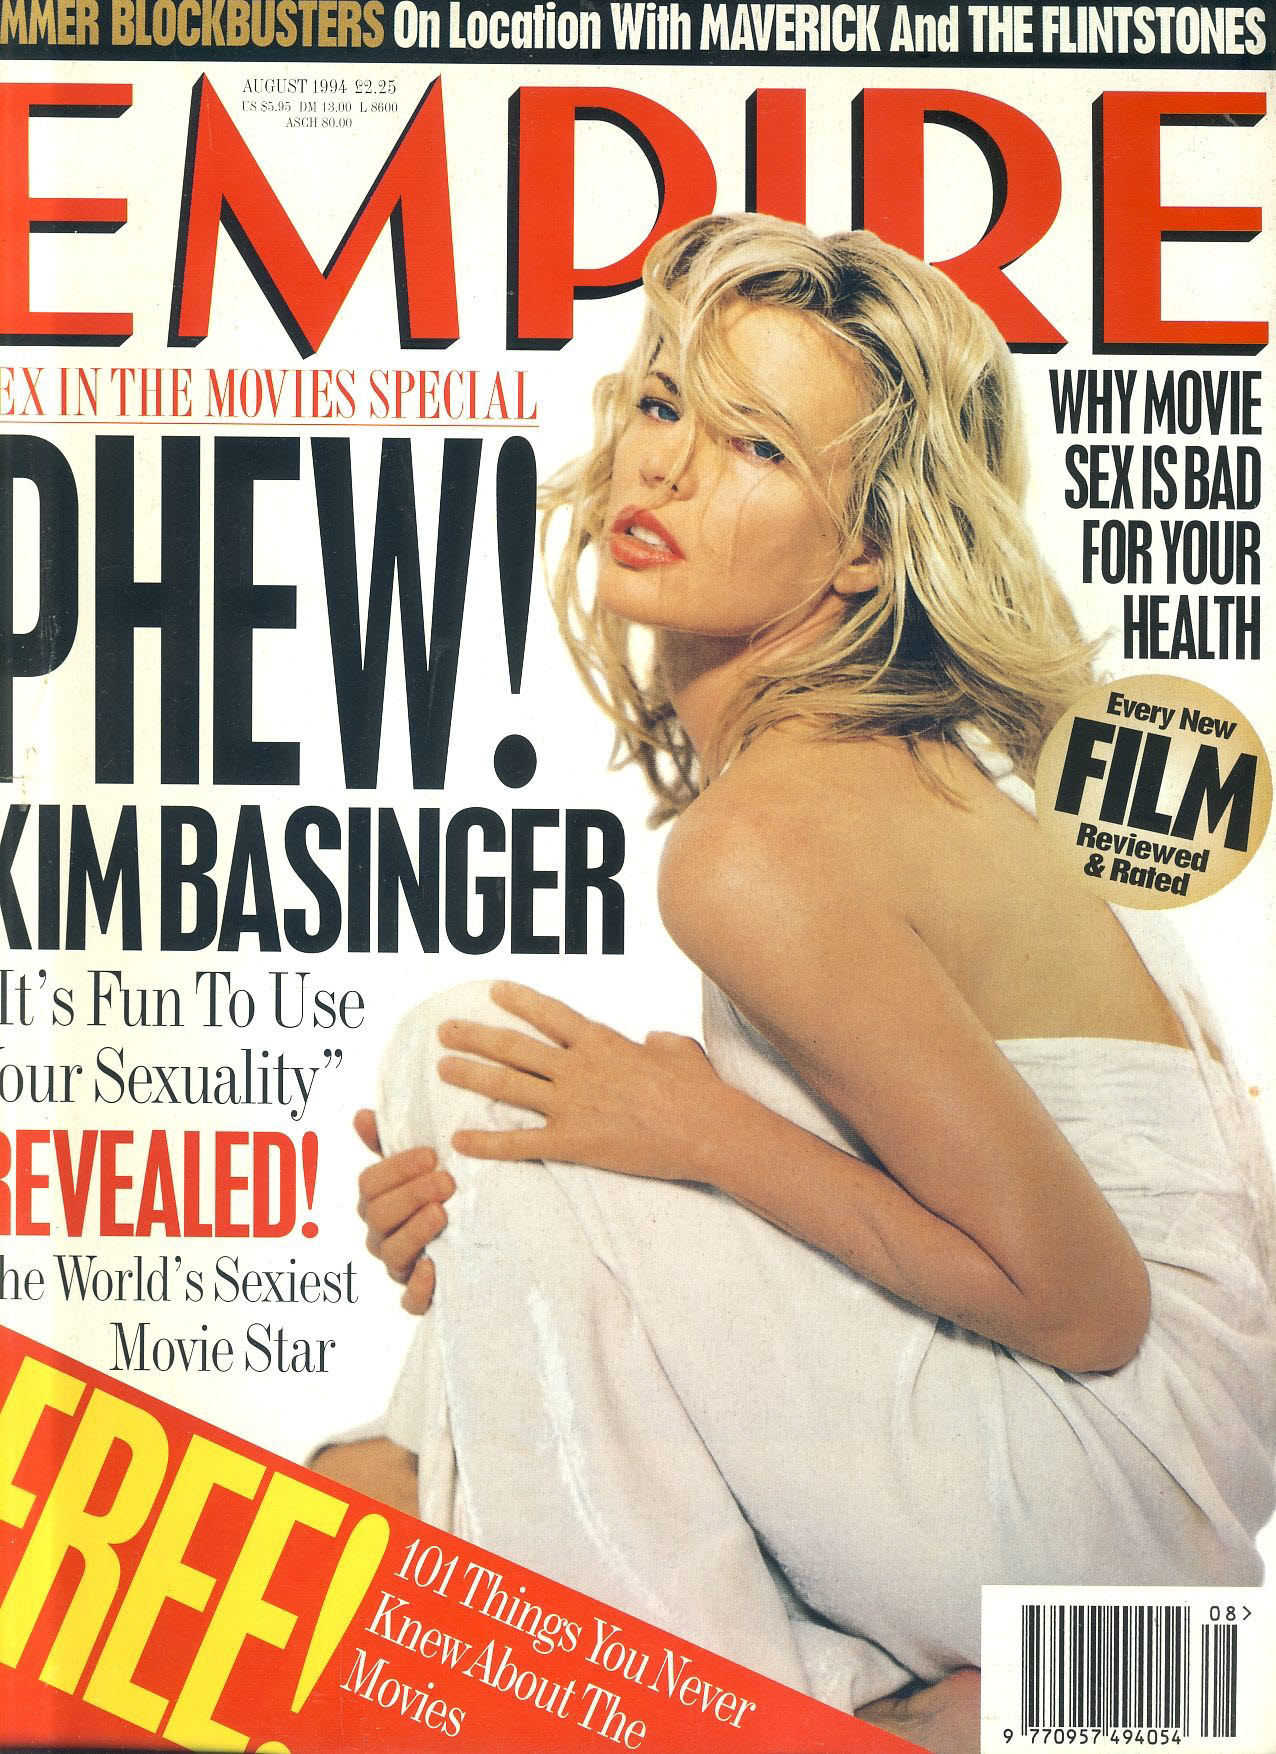 EMPIRE magazine AUG 1994 Kim Basinger ref100193 Pre-owned in good condition. Please see larger photo and full description for details.